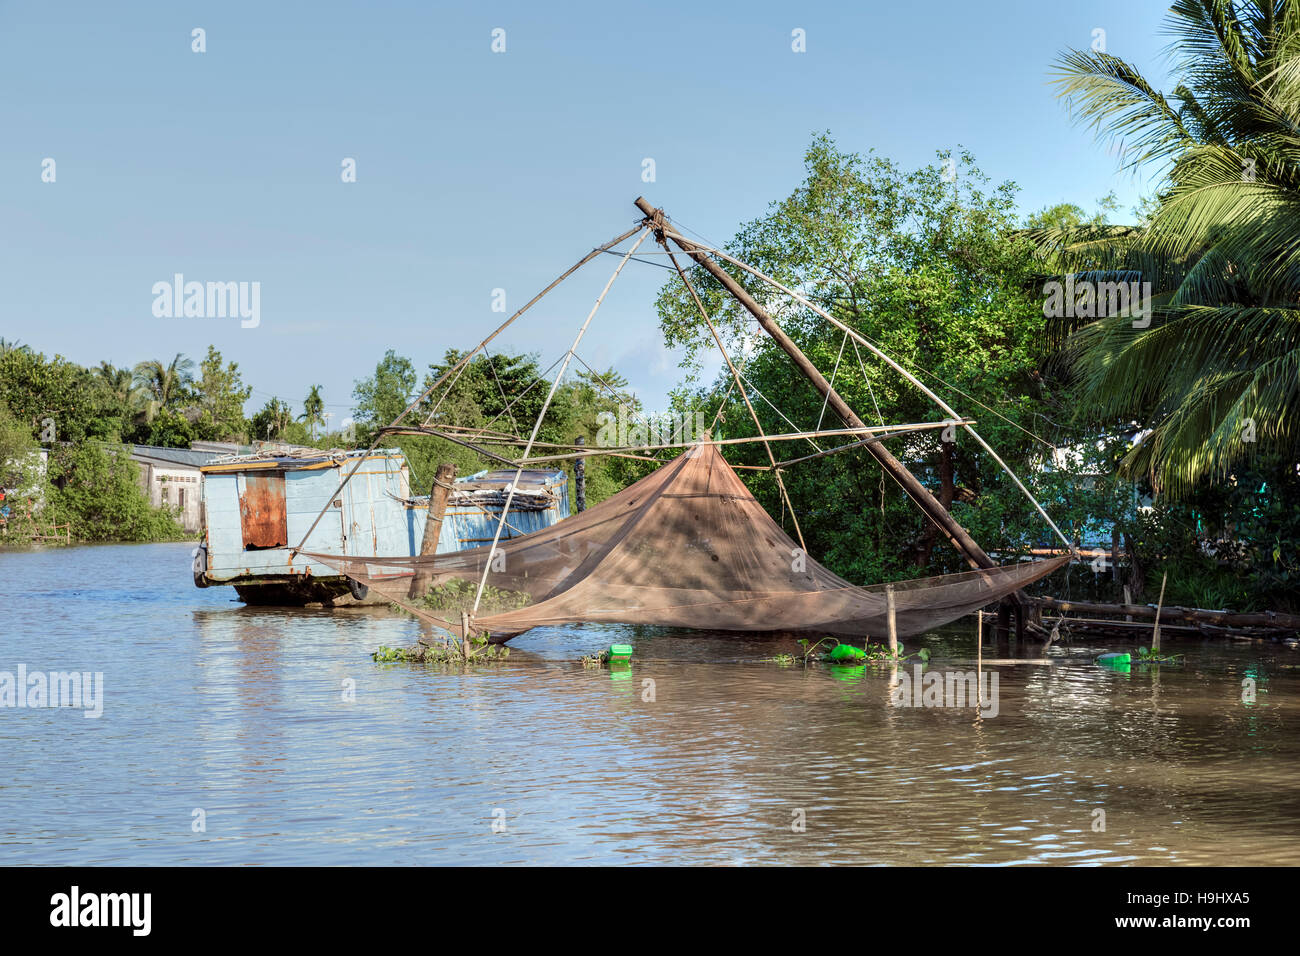 fisher net on the waterways in the Mekong Delta, Can Tho, Vietnam, Asia - Stock Image